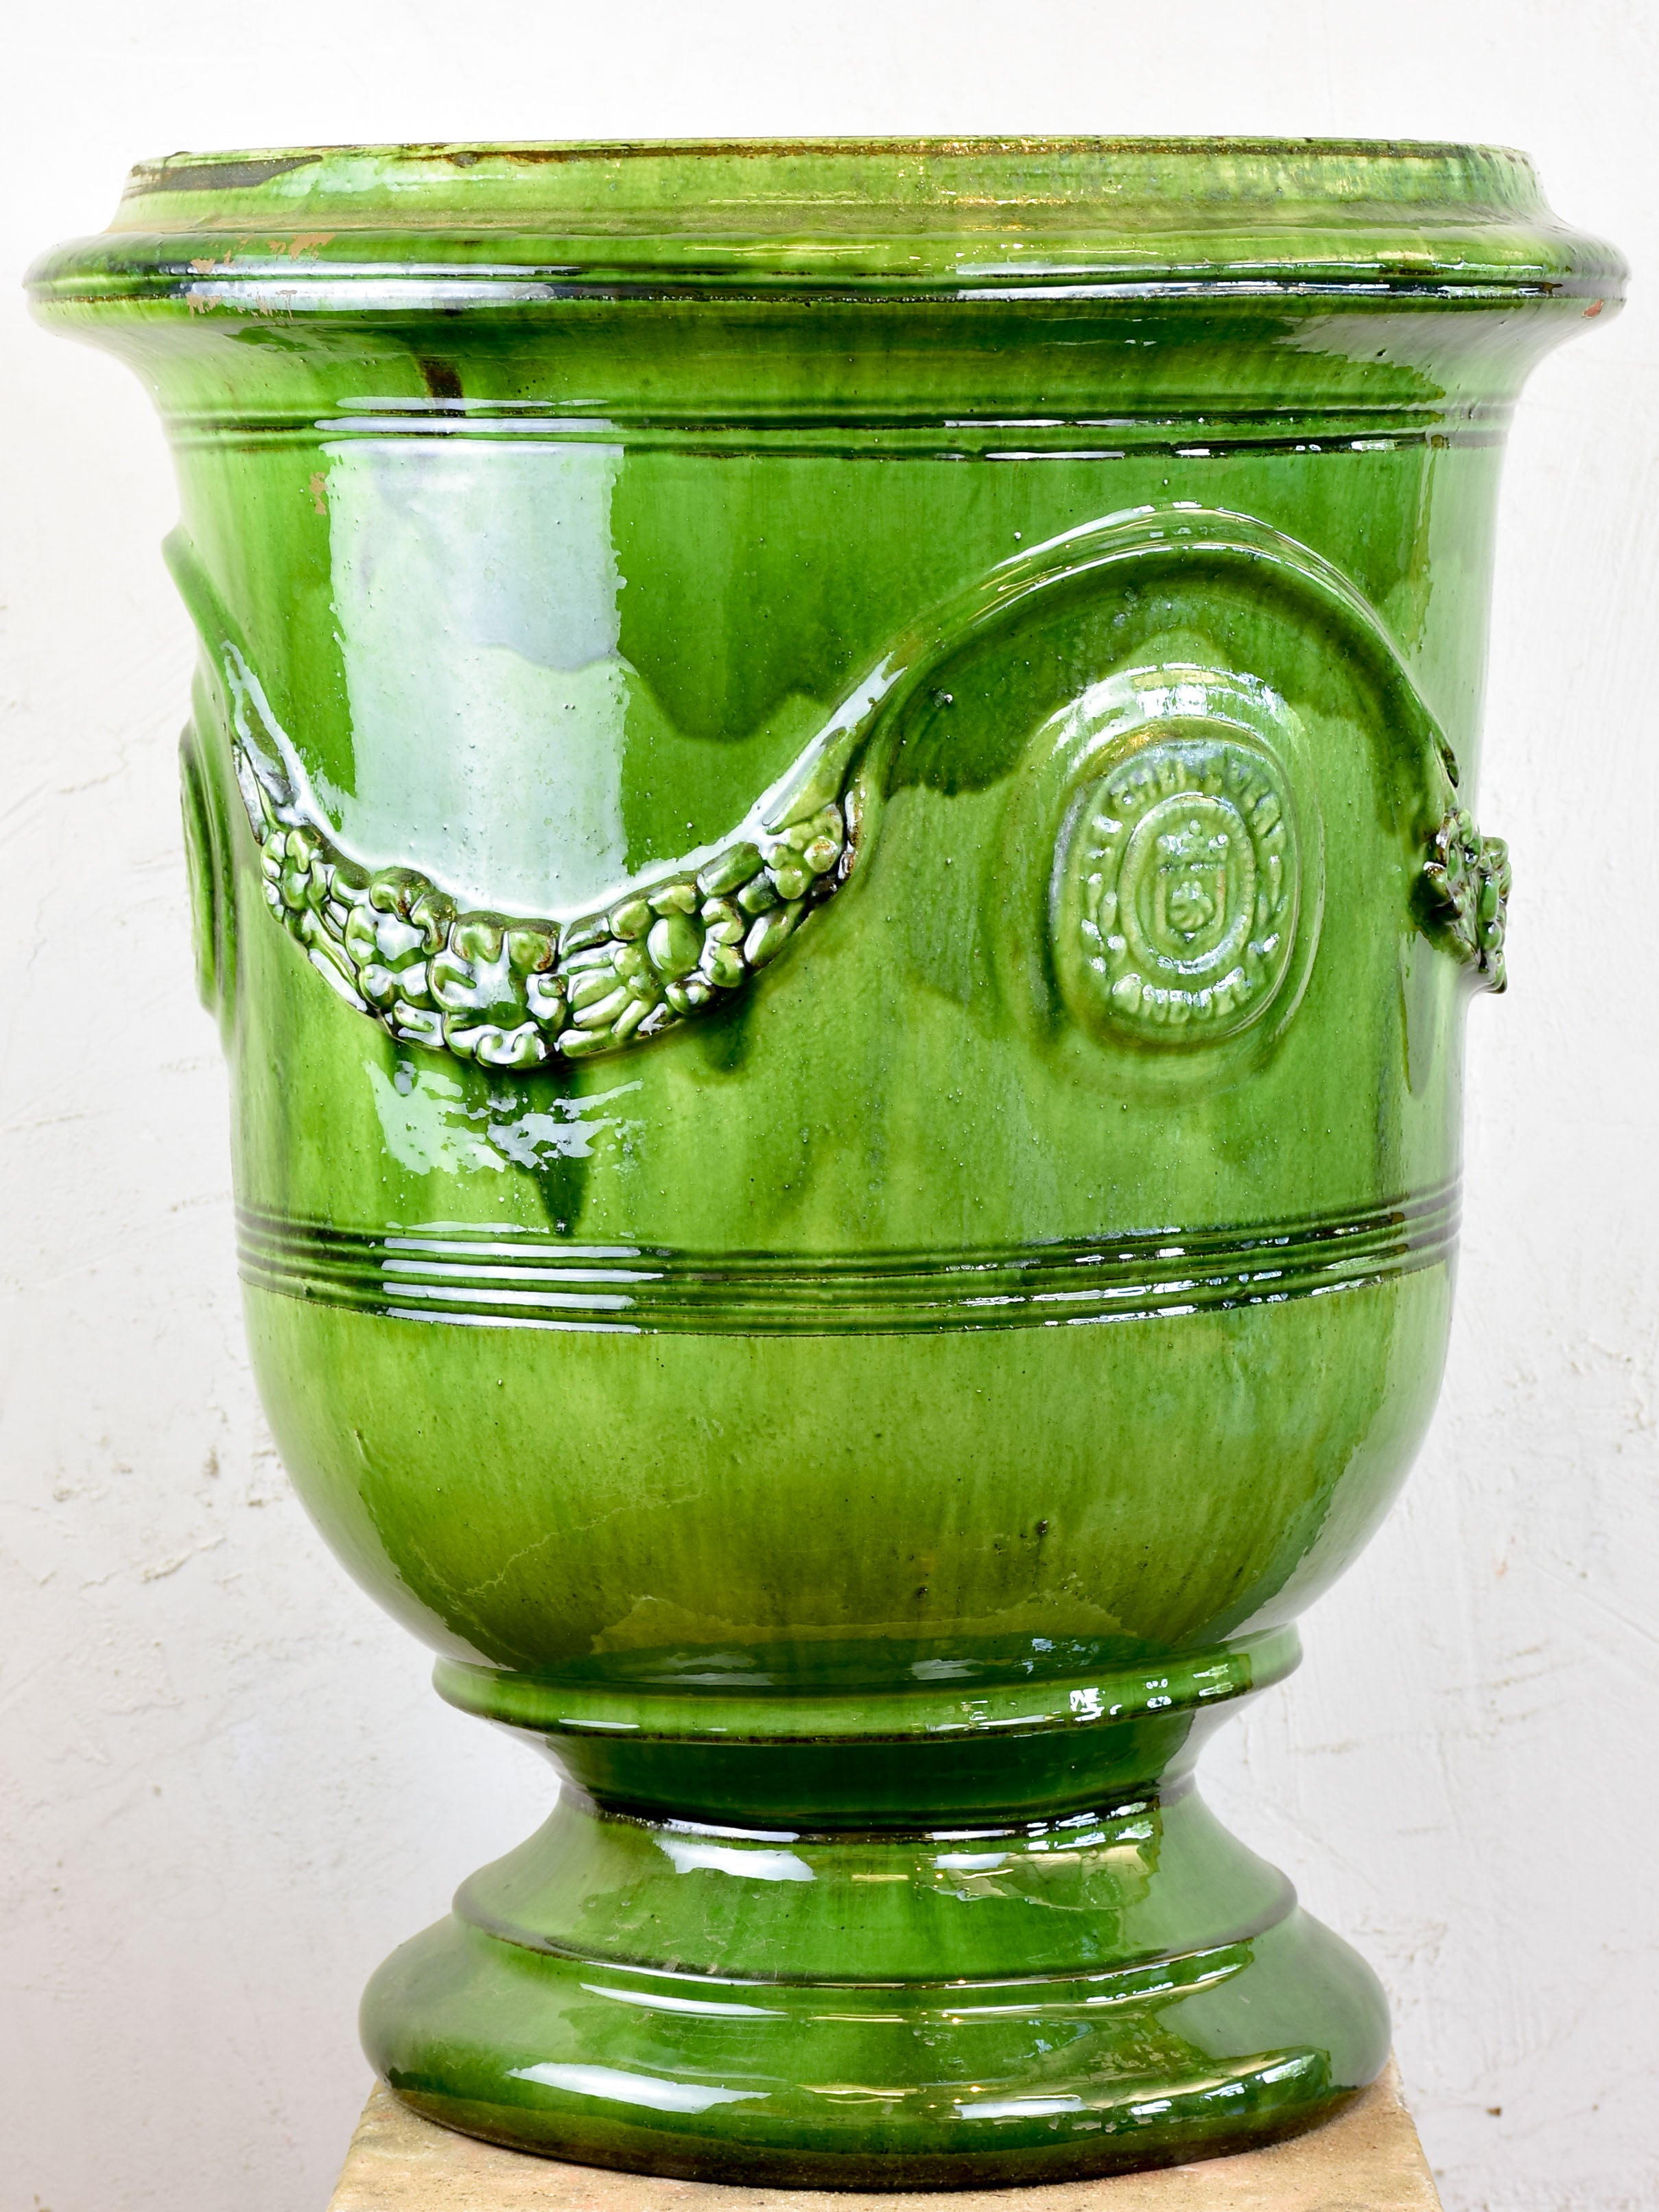 French Anduze garden urn - green